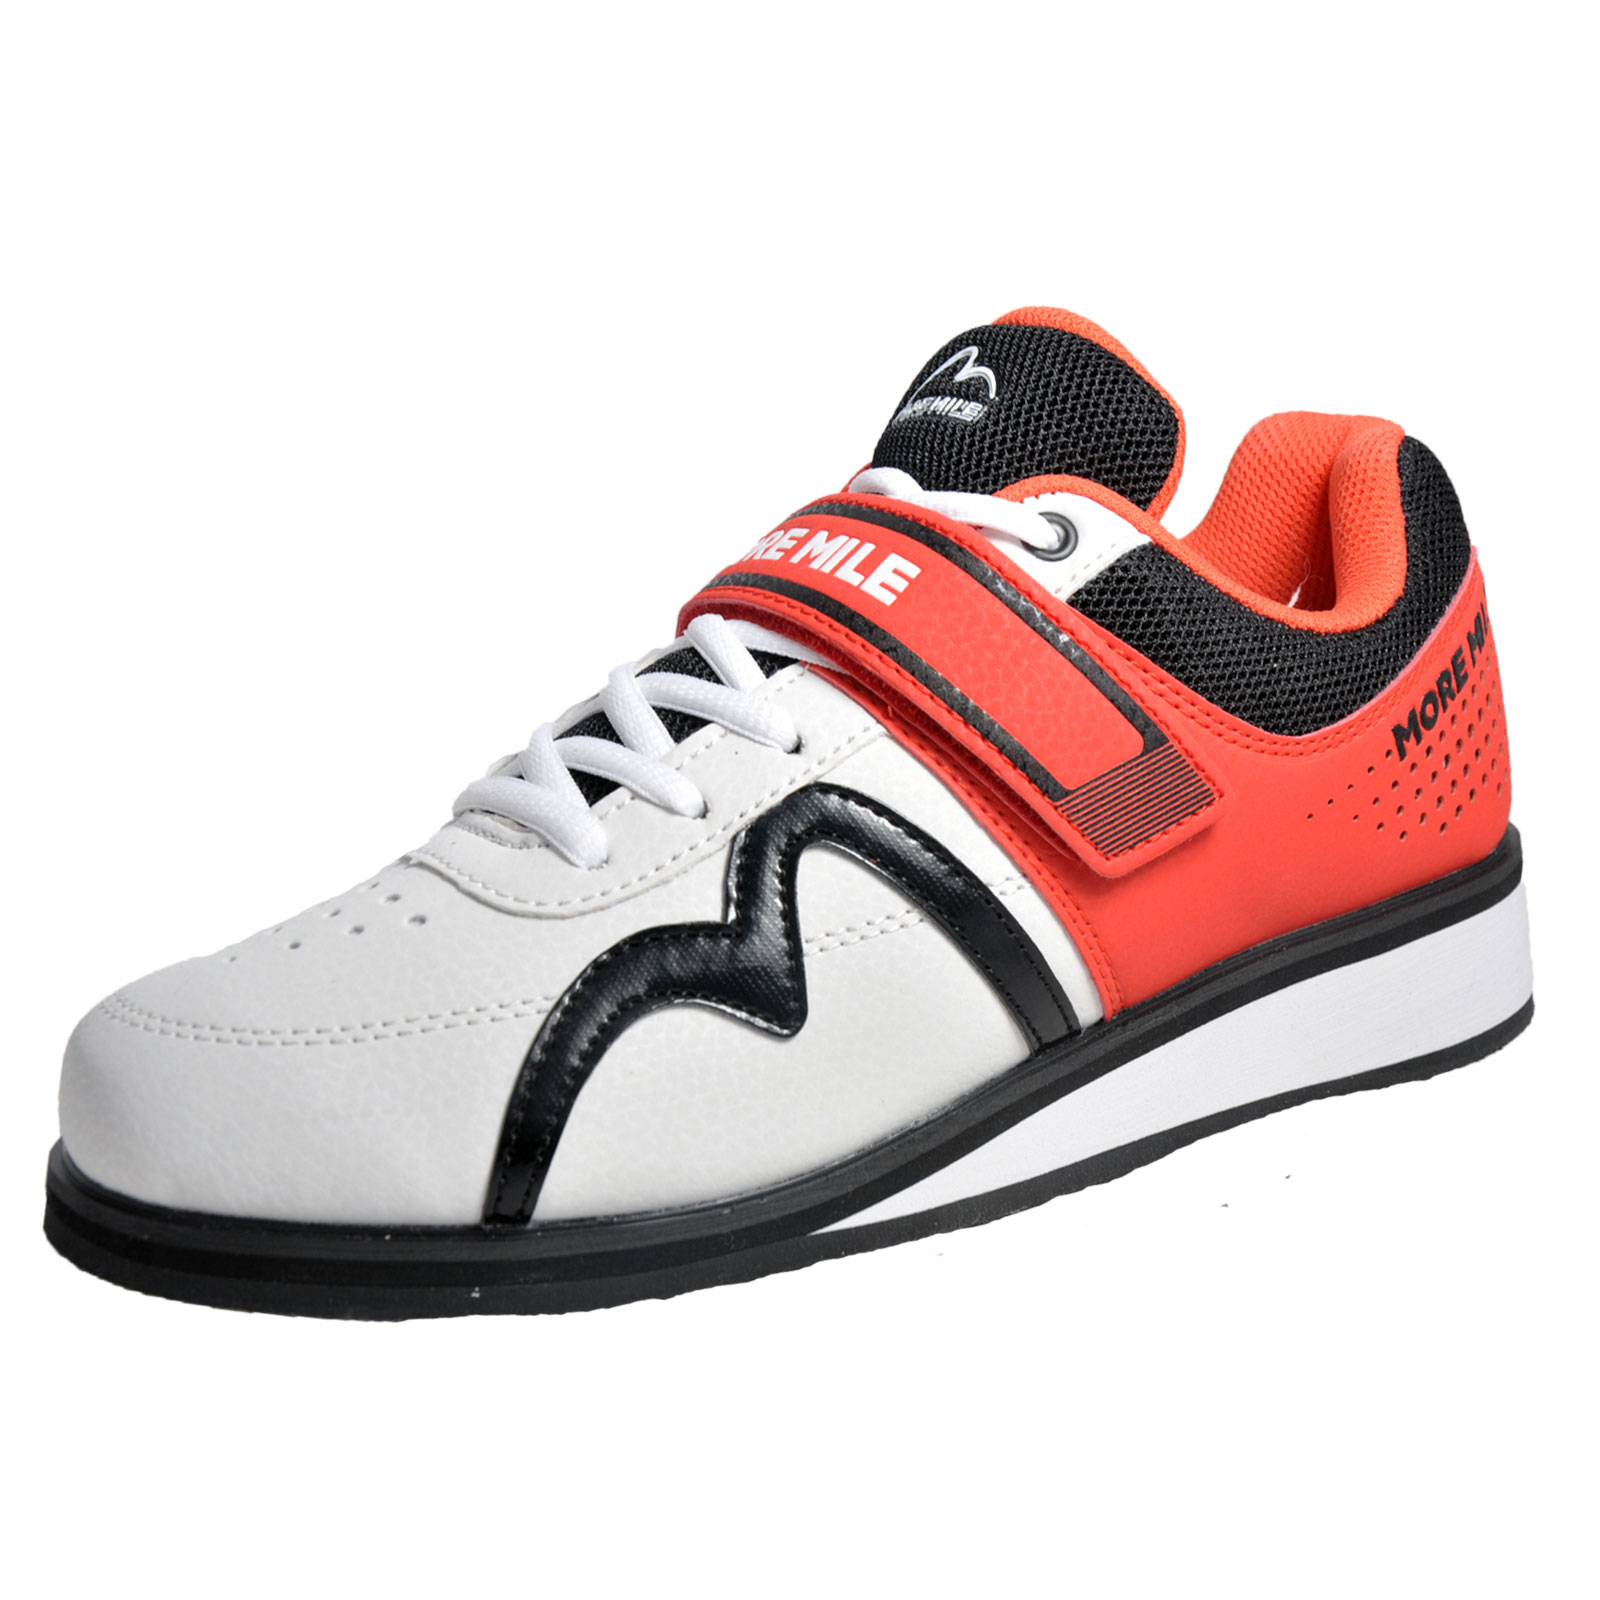 6db3ae676b356a Details about More Mile Mens Weightlifting Shoes Cross Training Gym  Trainers White Red